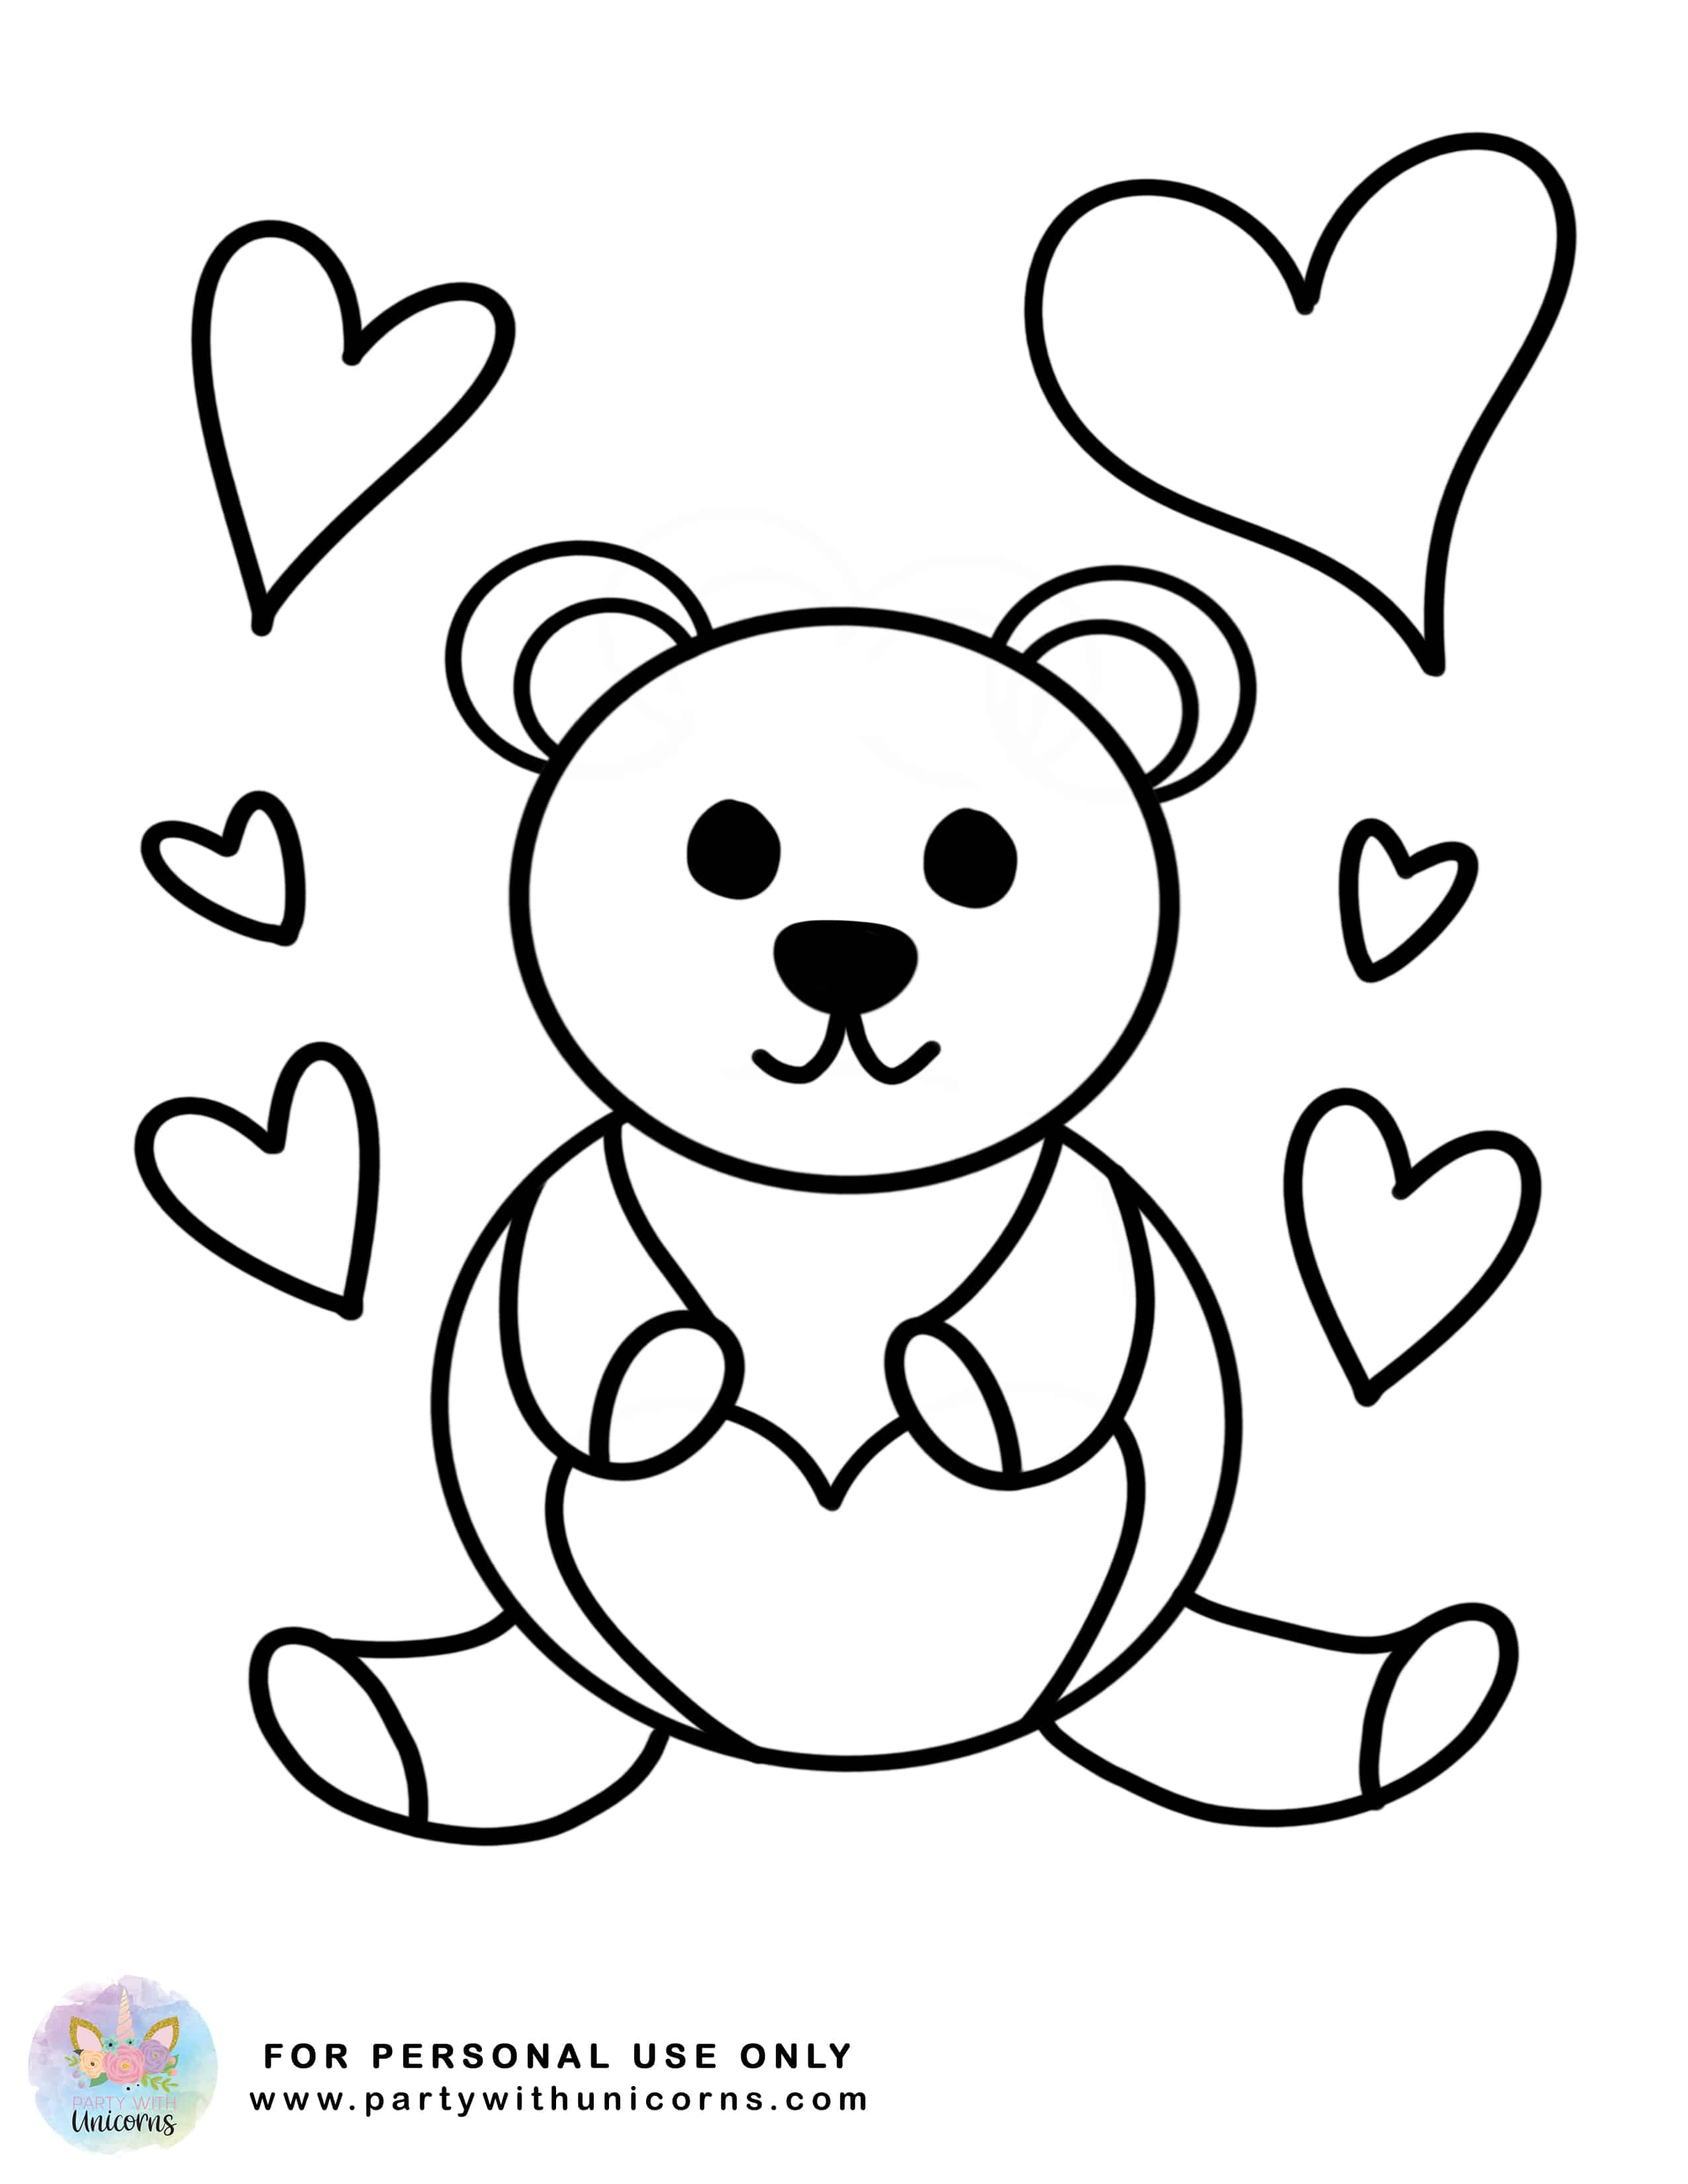 valentines coloring page valentines coloring pages free coloring pages for kids valentines coloring page